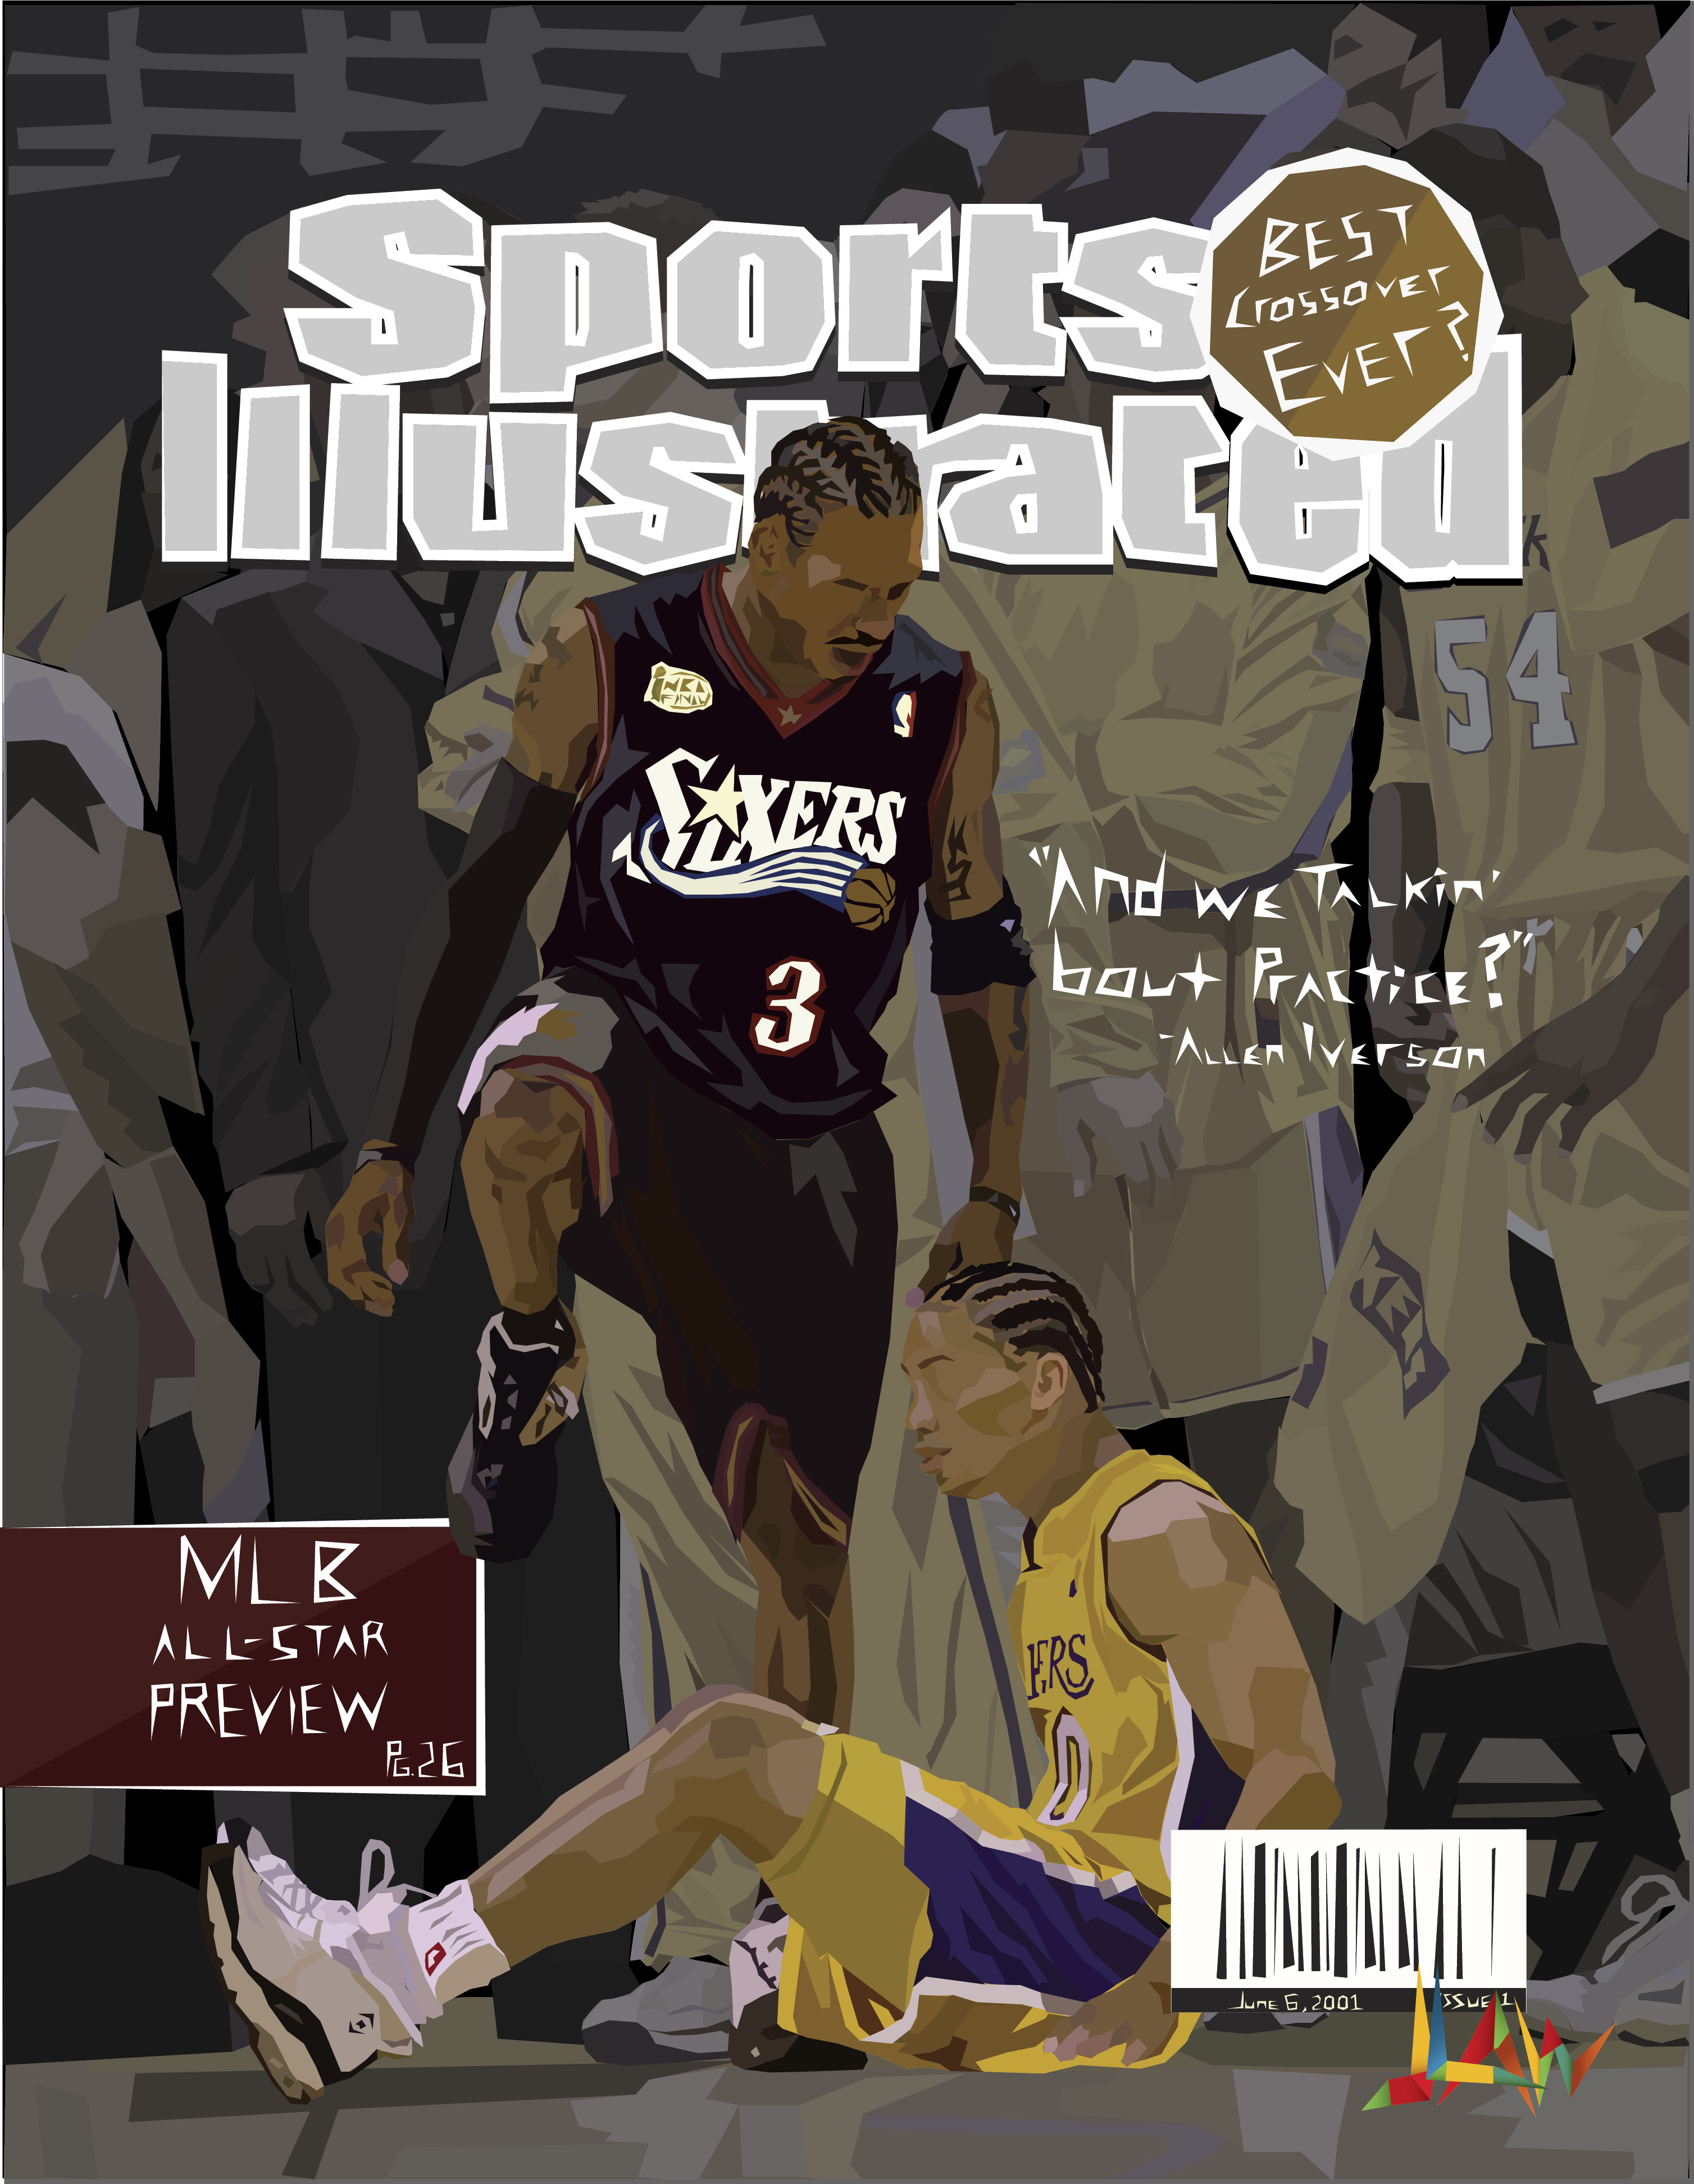 allen iverson, sports illustrated, sports, practice, sixers, lakers